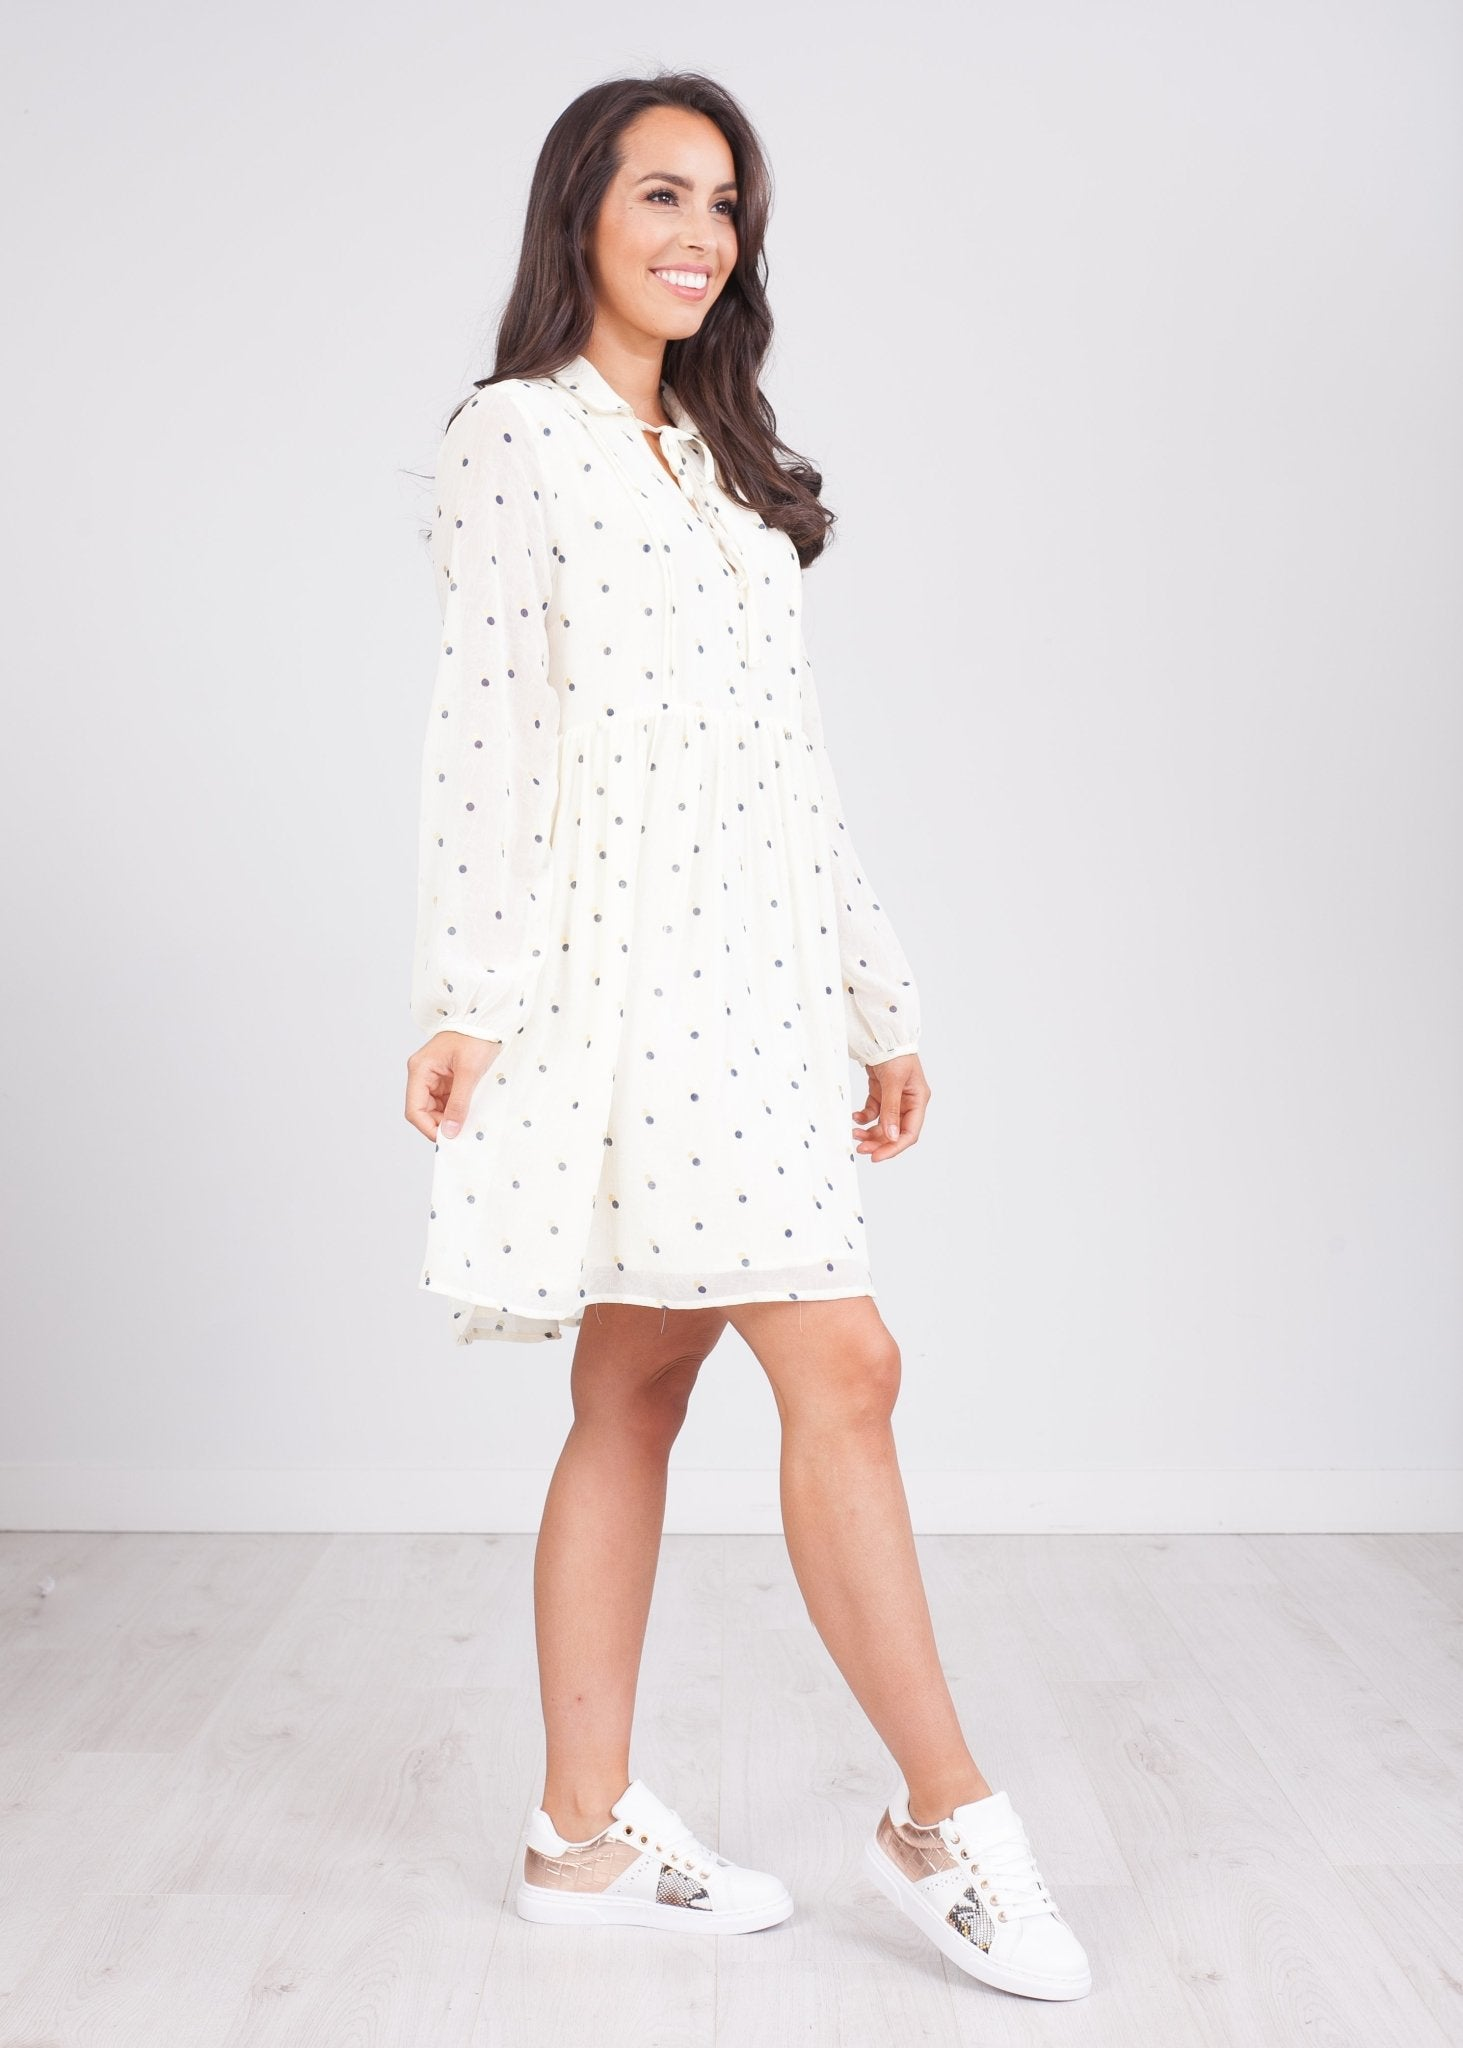 Cherie Cream Polka Dot Dress - The Walk in Wardrobe